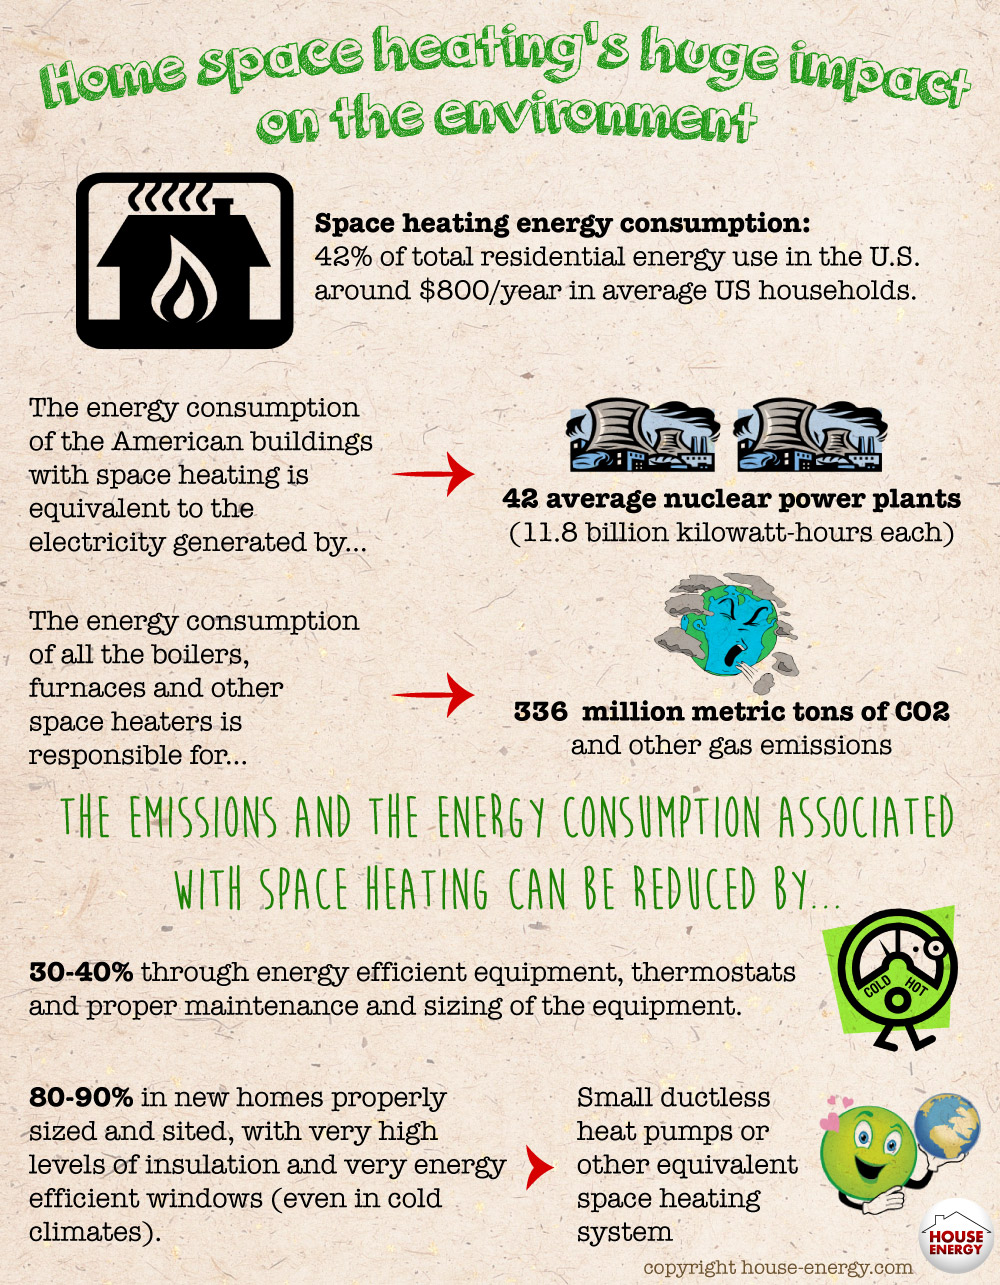 Home Space Heating Impact on the Environment